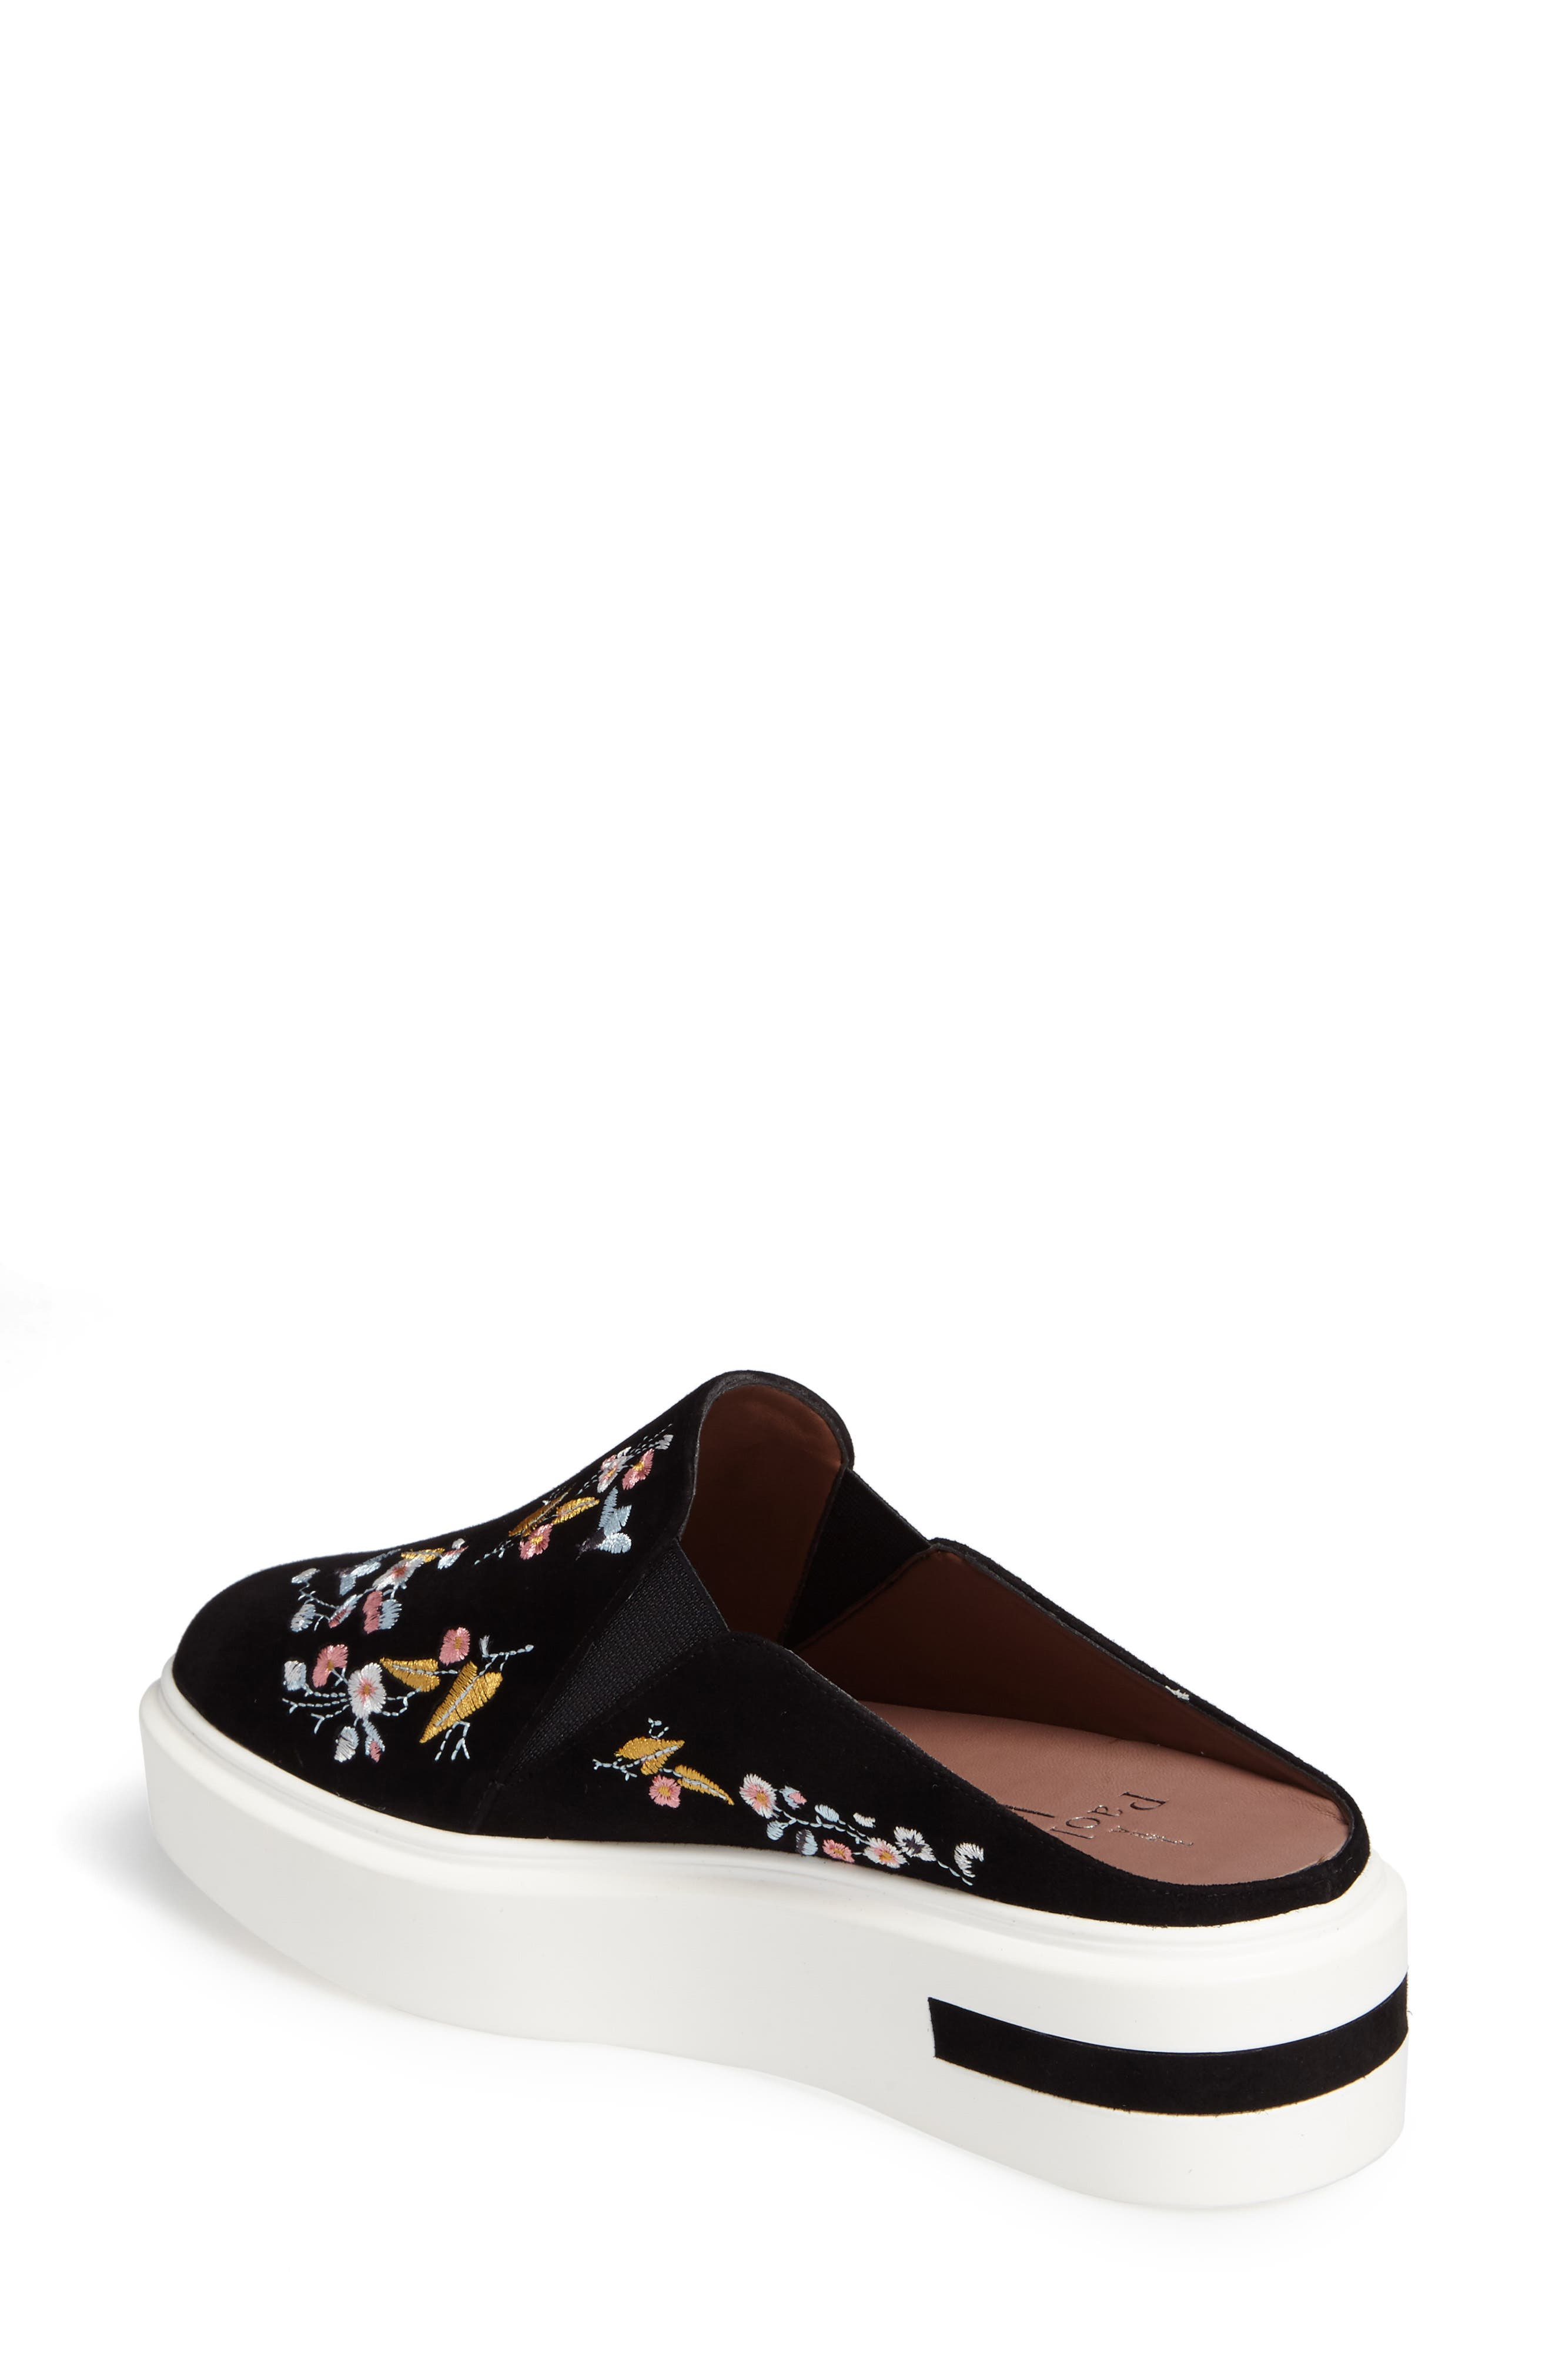 Fab II Embroidered Platform Sneaker,                             Alternate thumbnail 2, color,